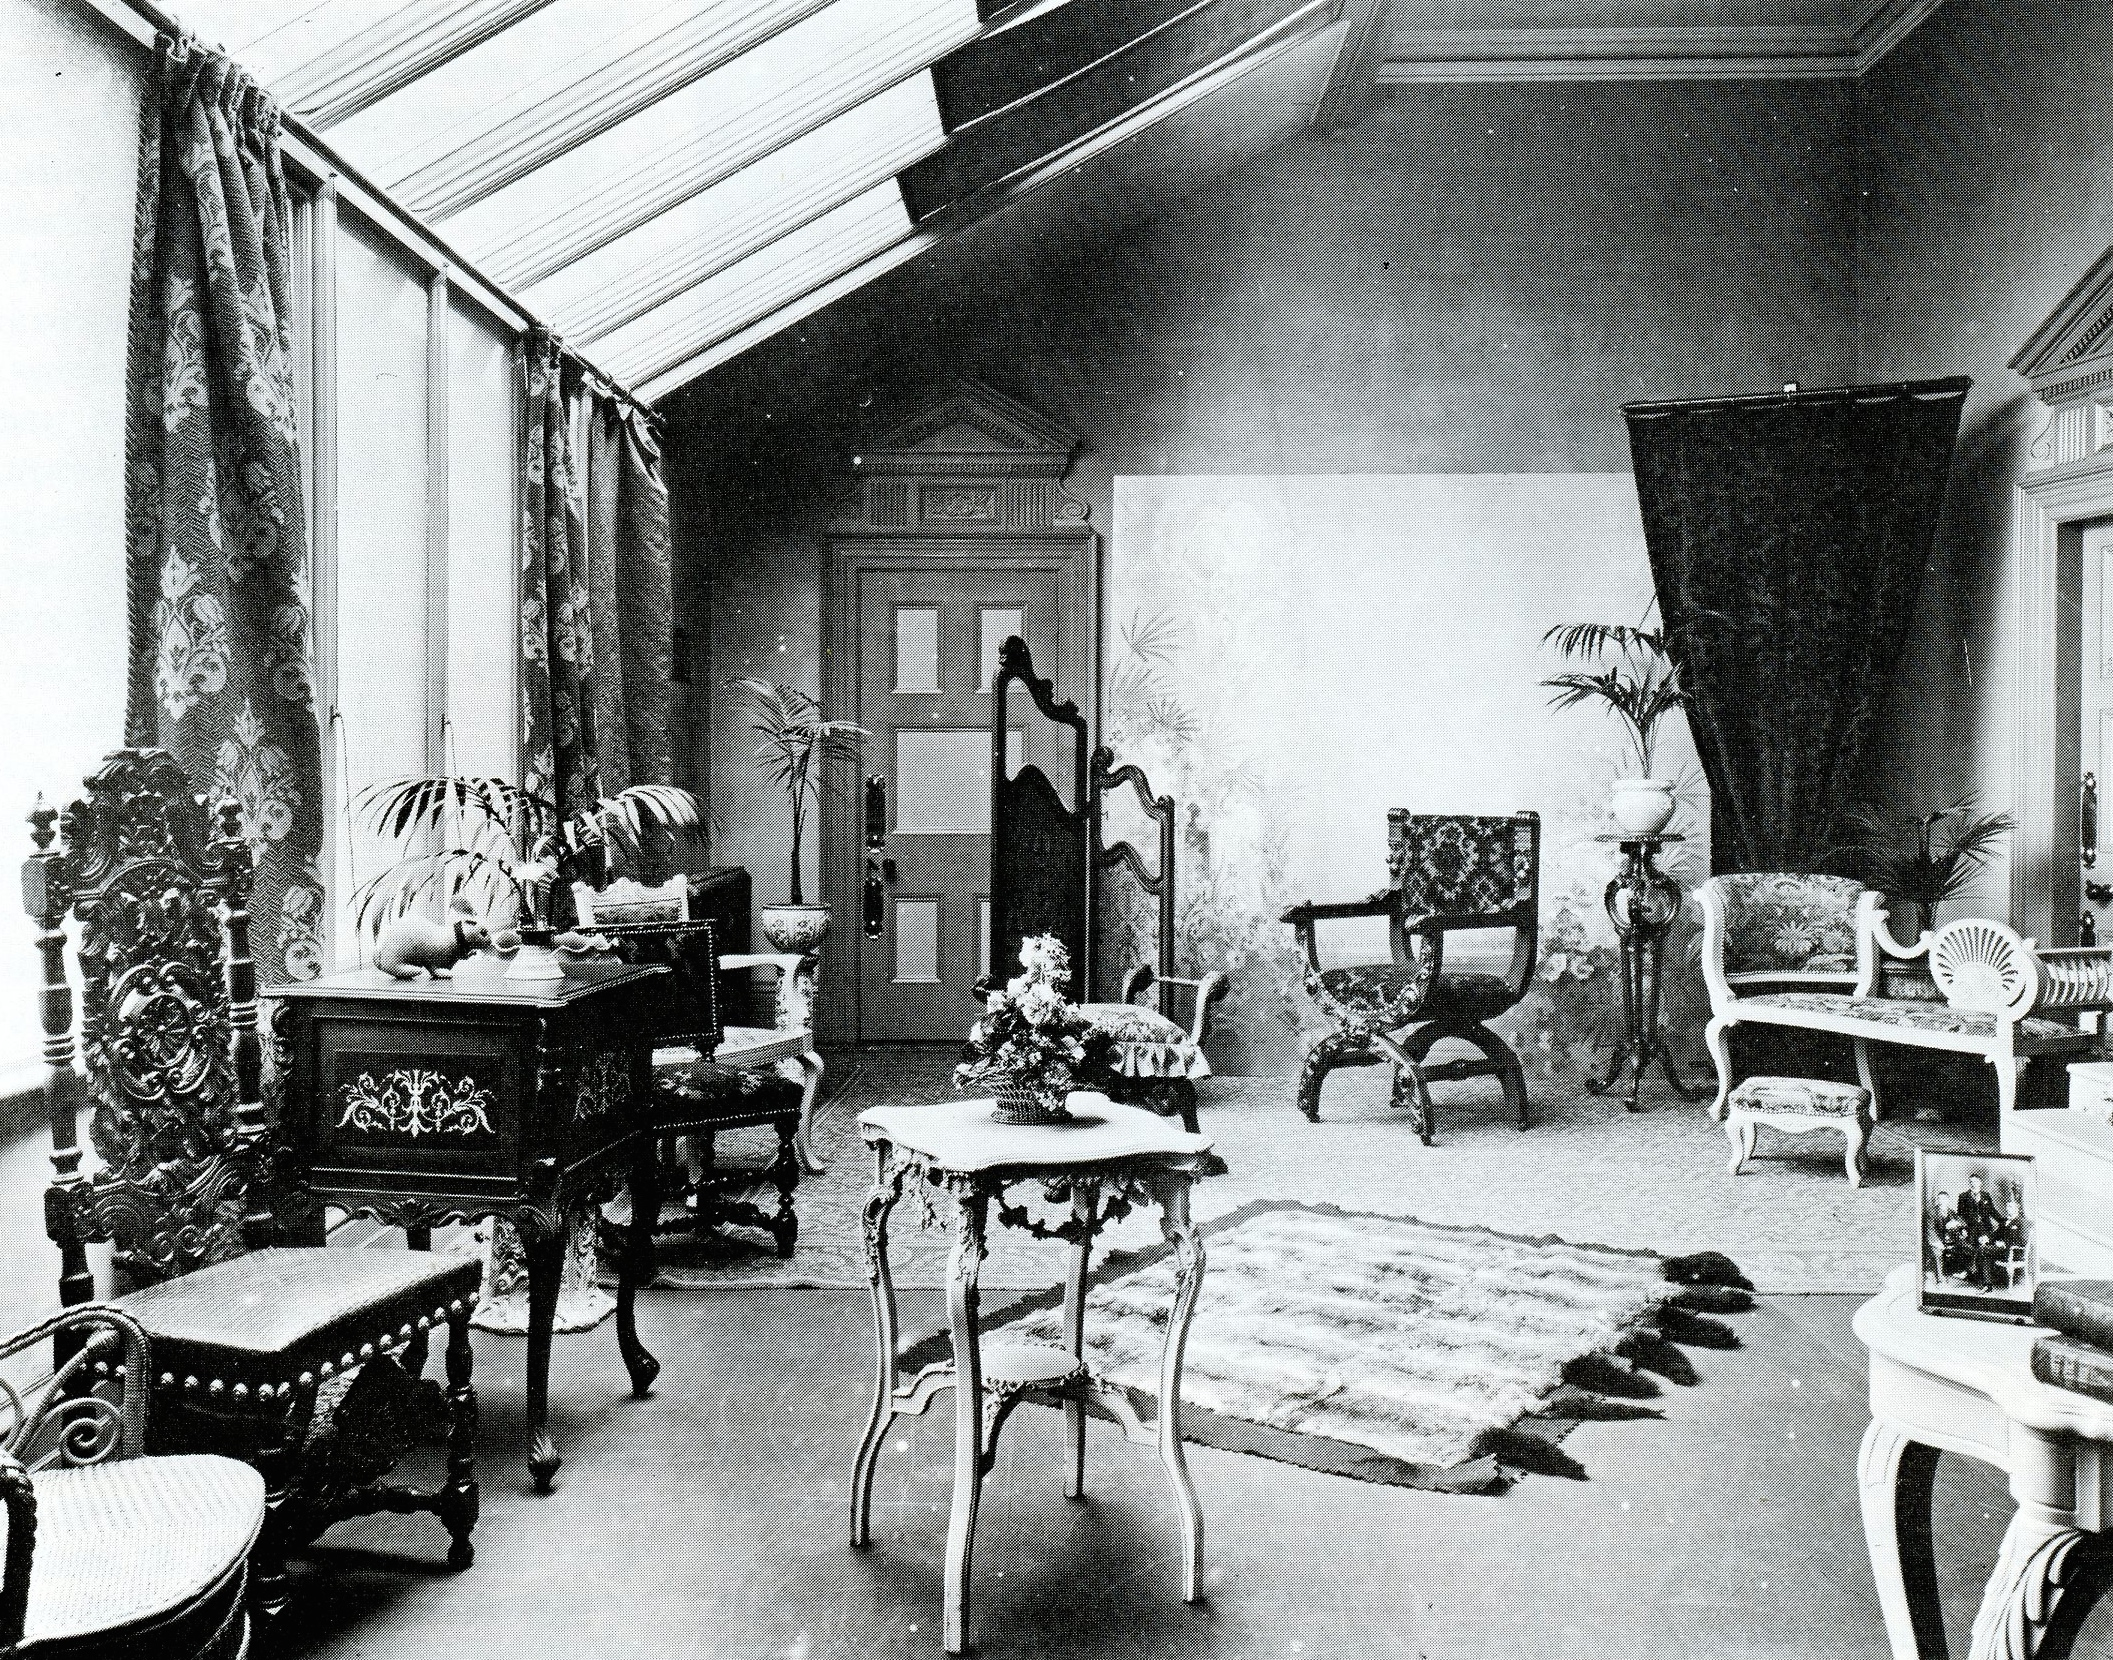 photographer's studio, 1850